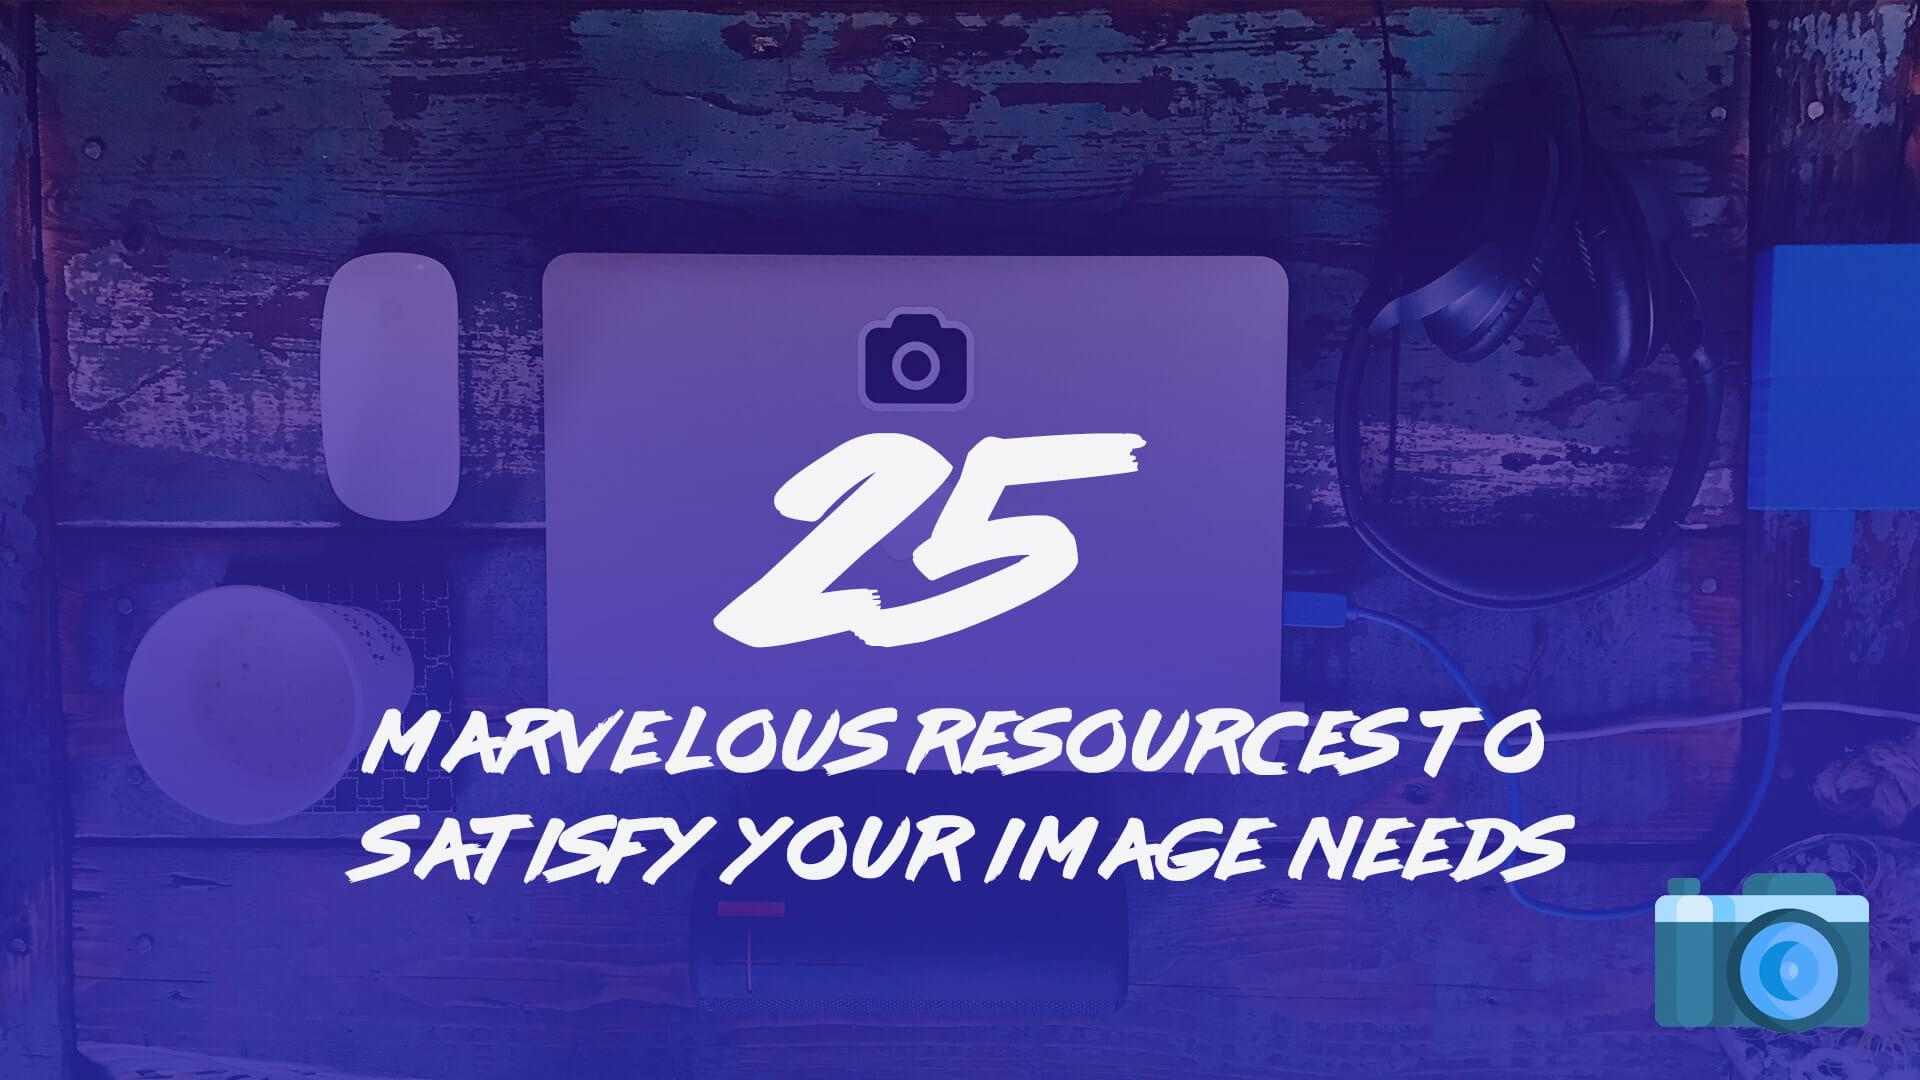 25 Marvelous Resources to satisfy your image needs 🙌